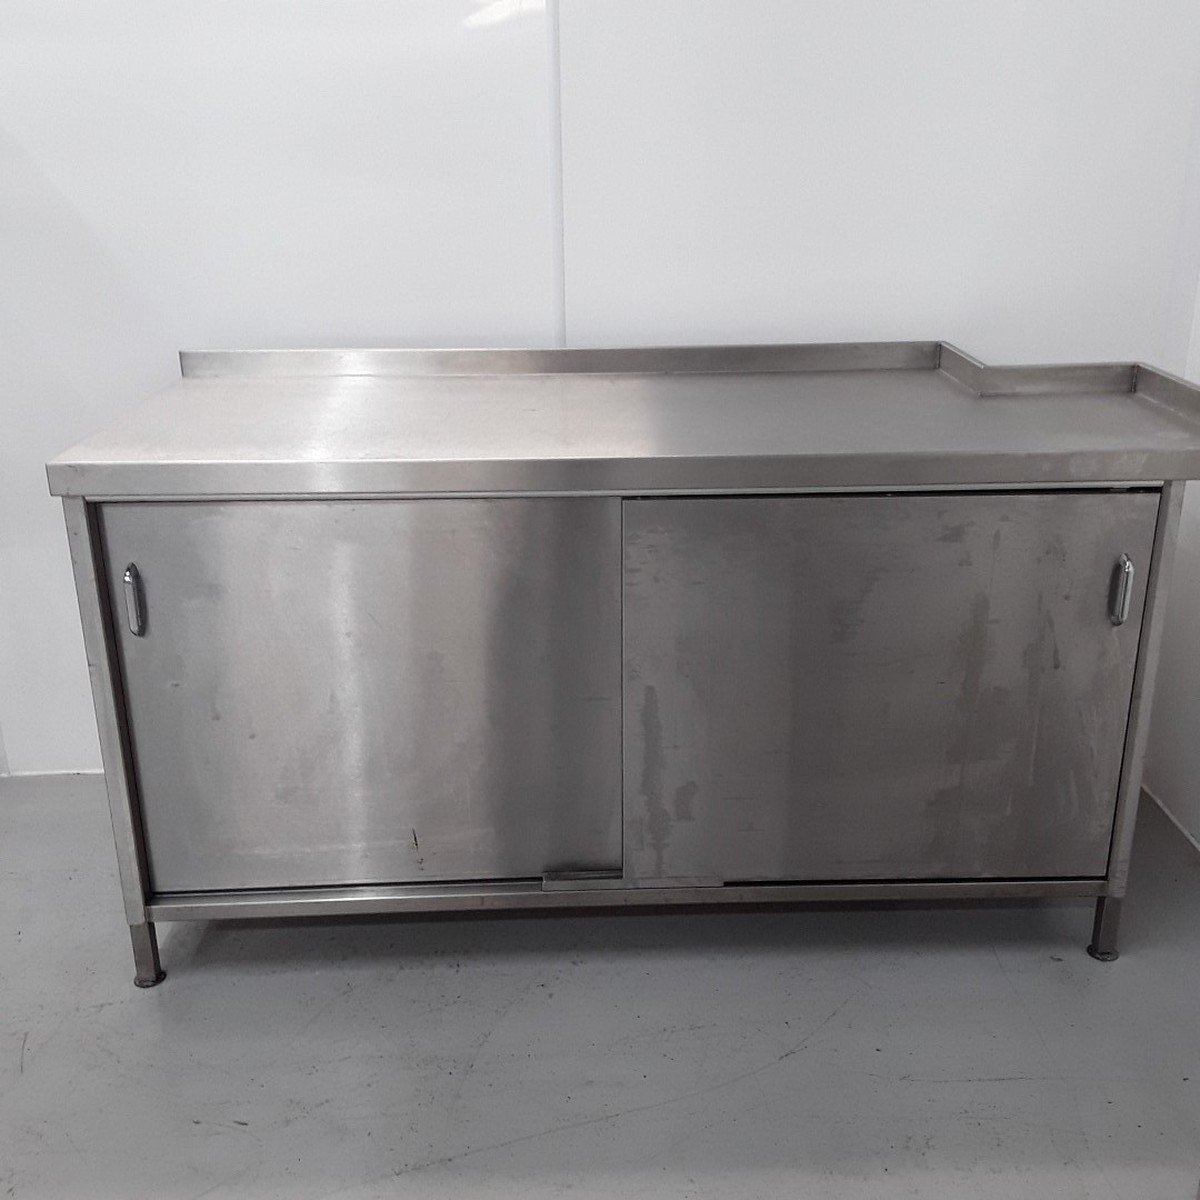 Secondhand Catering Equipment   Kitchen Cupboards and ...